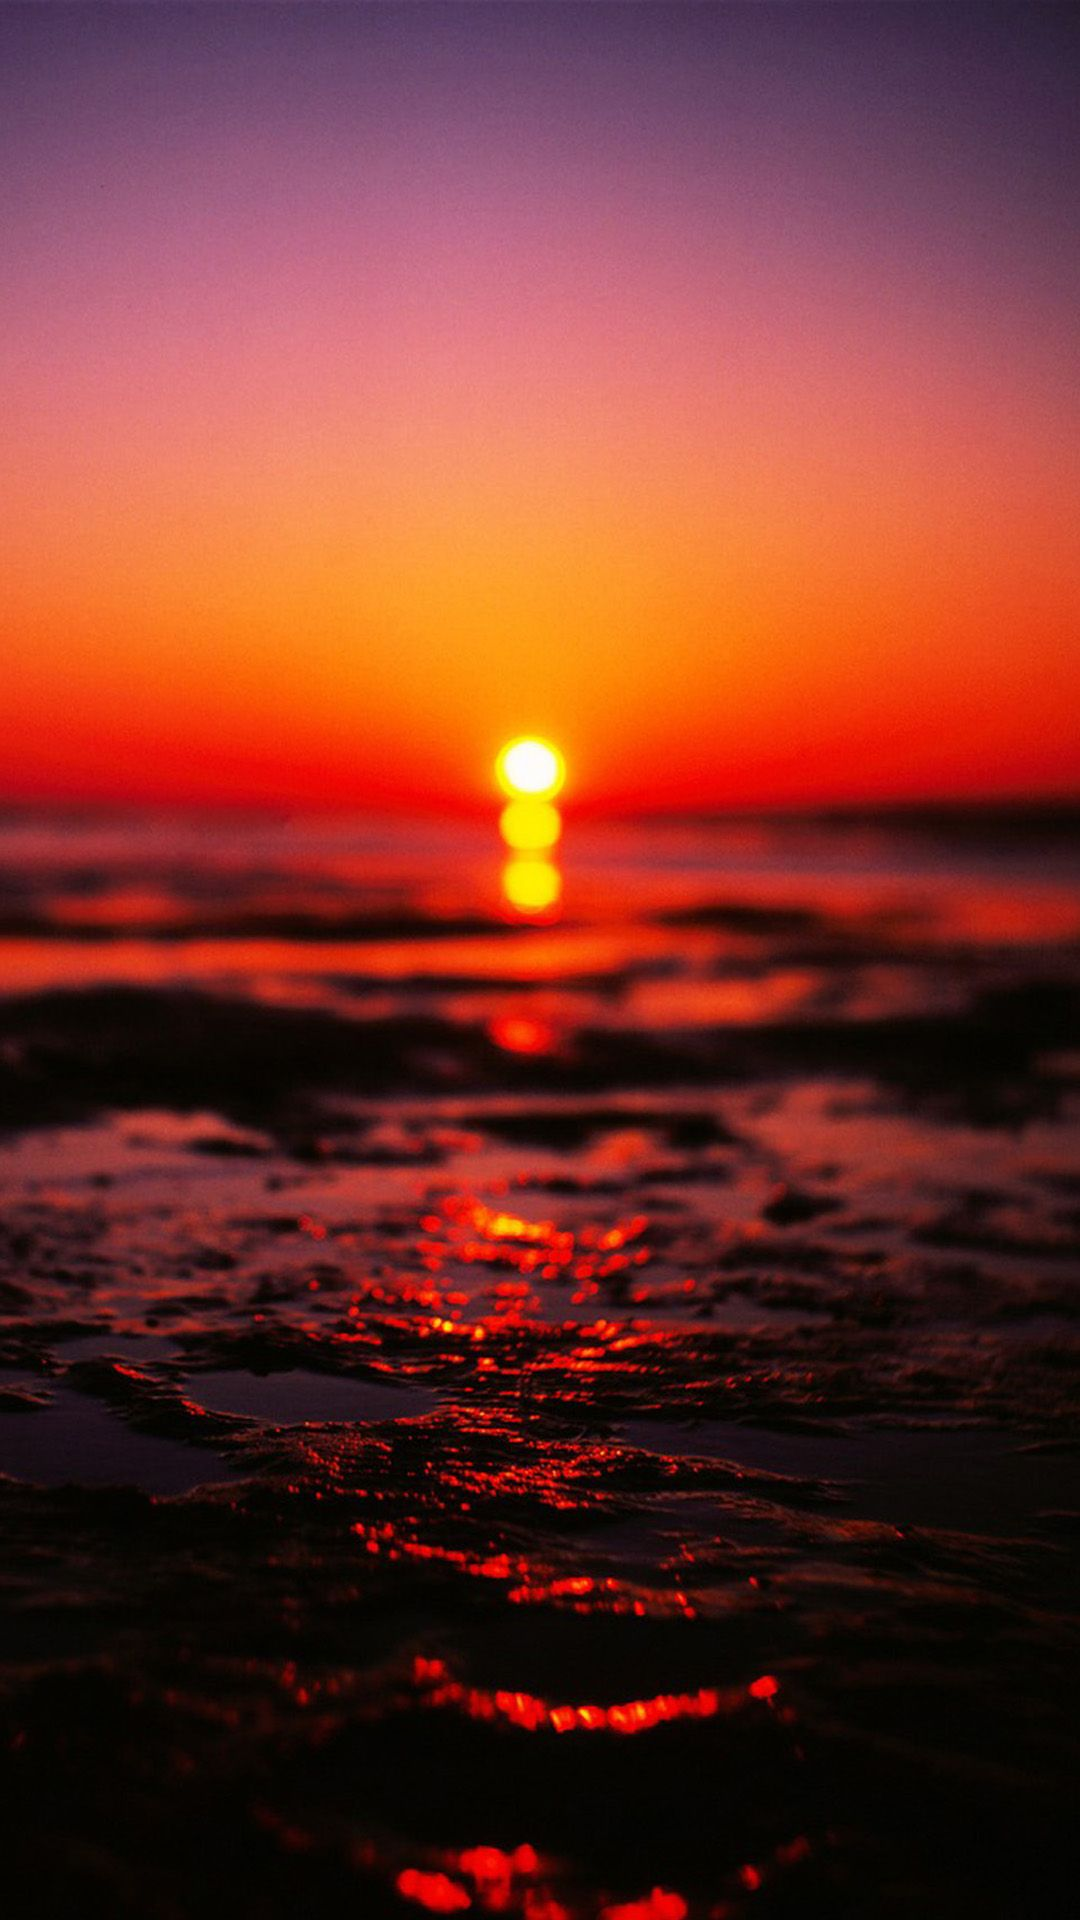 Beauty of Nature | Keep Looking Up in 2019 | Sunset wallpaper, Iphone wallpaper, Beautiful ...